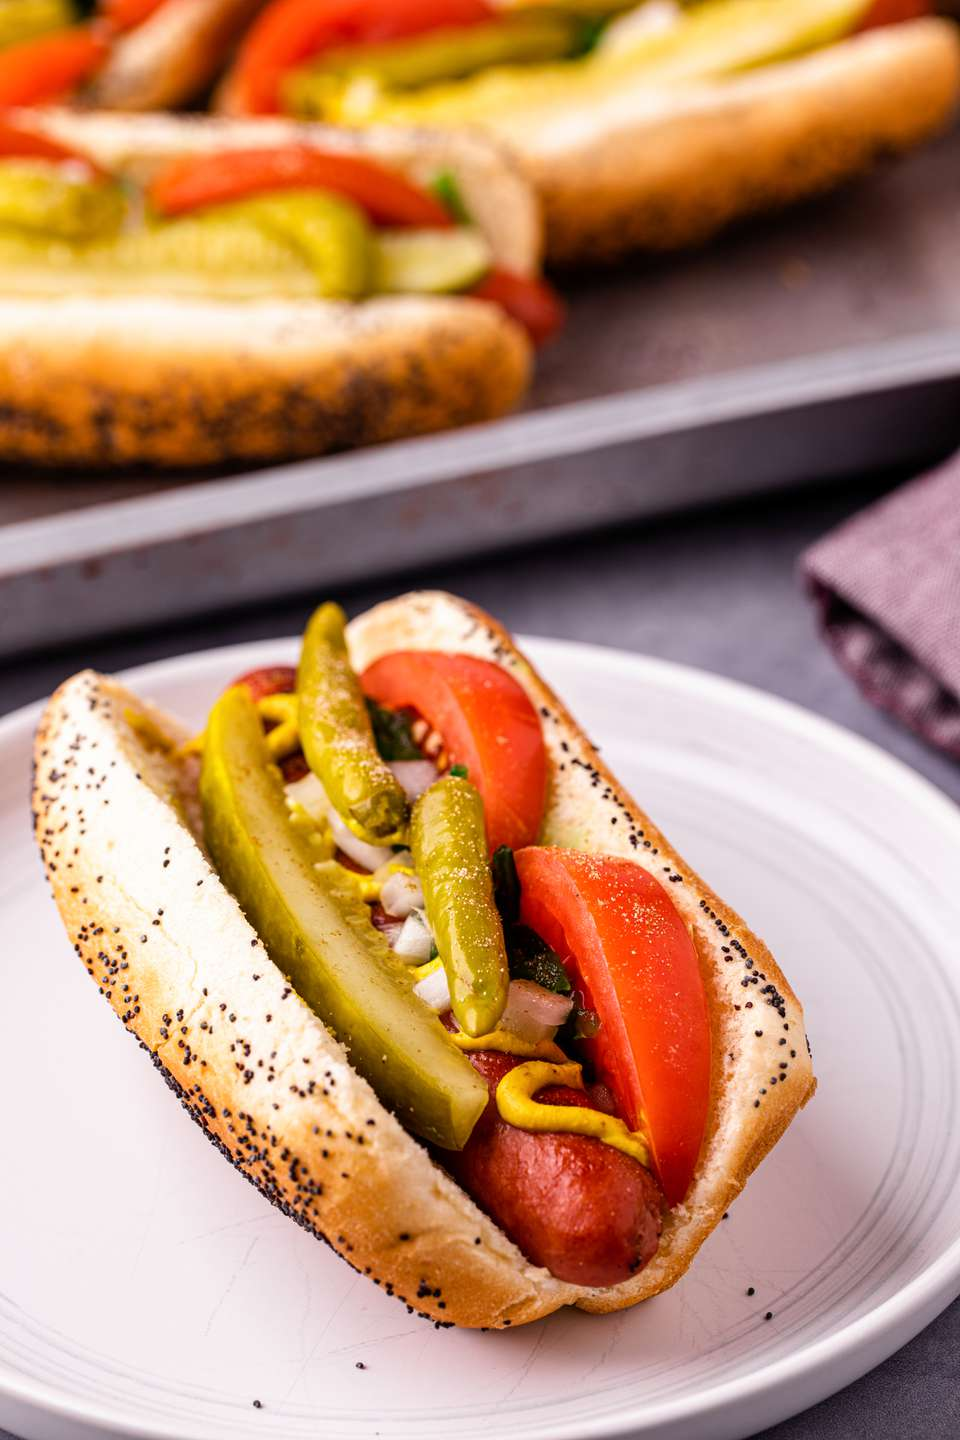 Chicago-style hot dog on a plate with more hot dogs in buns behind it on a baking sheet.